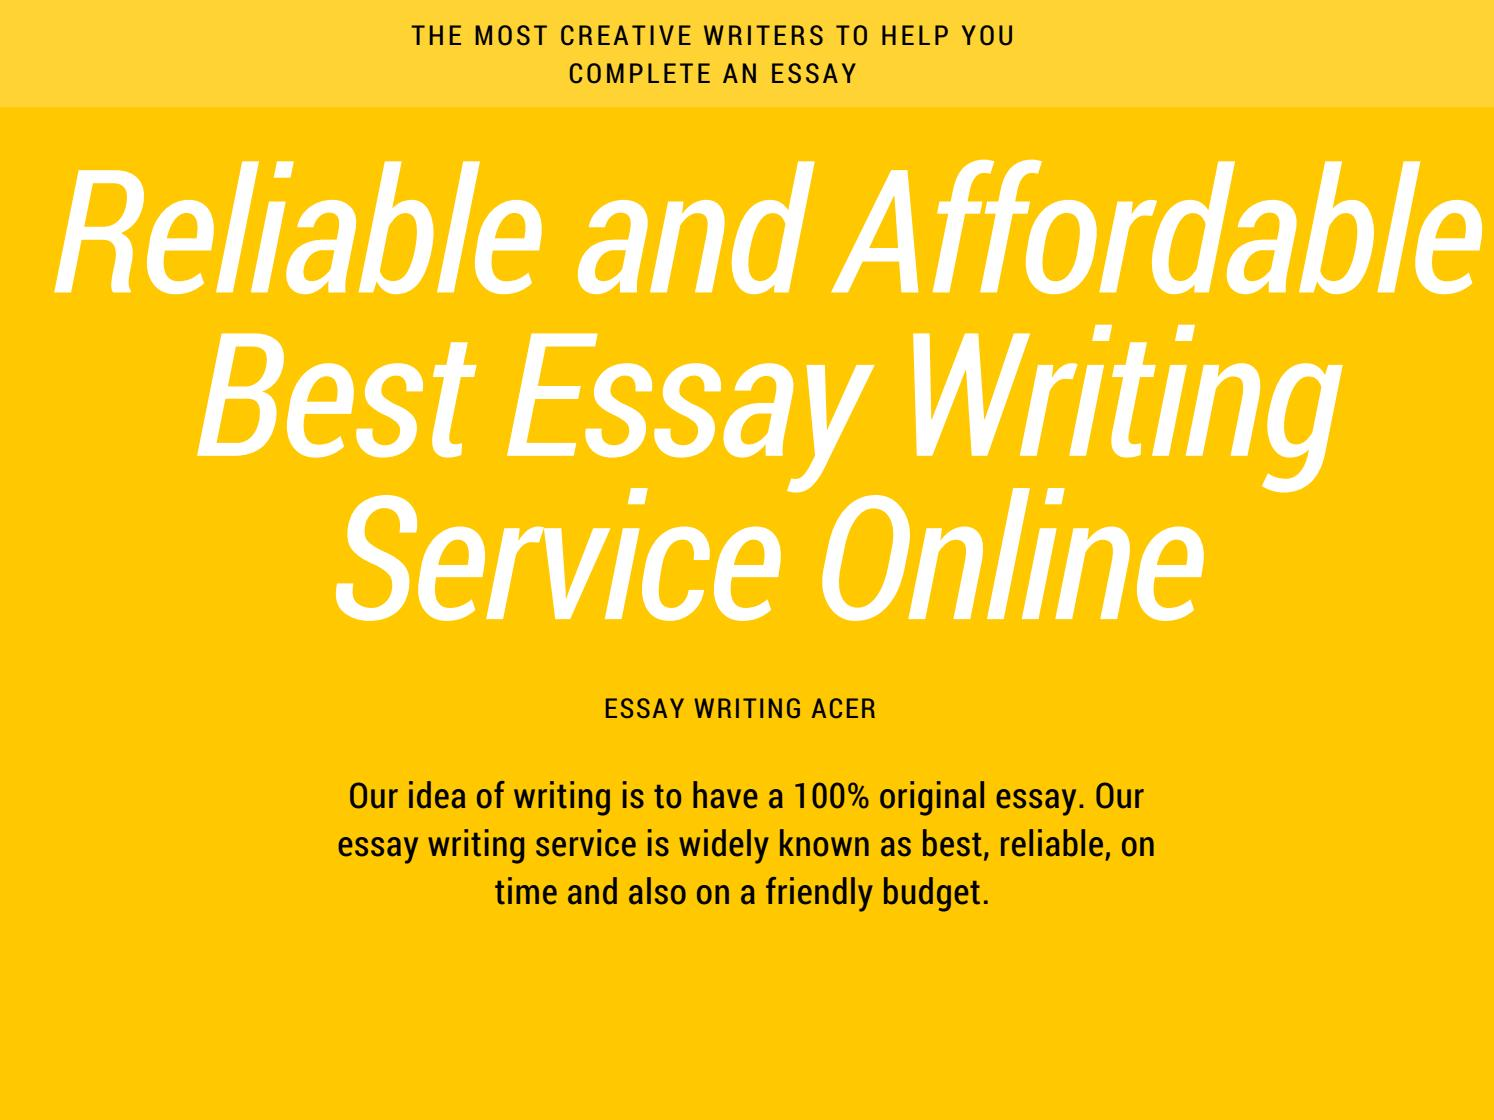 WE PROVIDE THE MOST SECURE ESSAY HELP